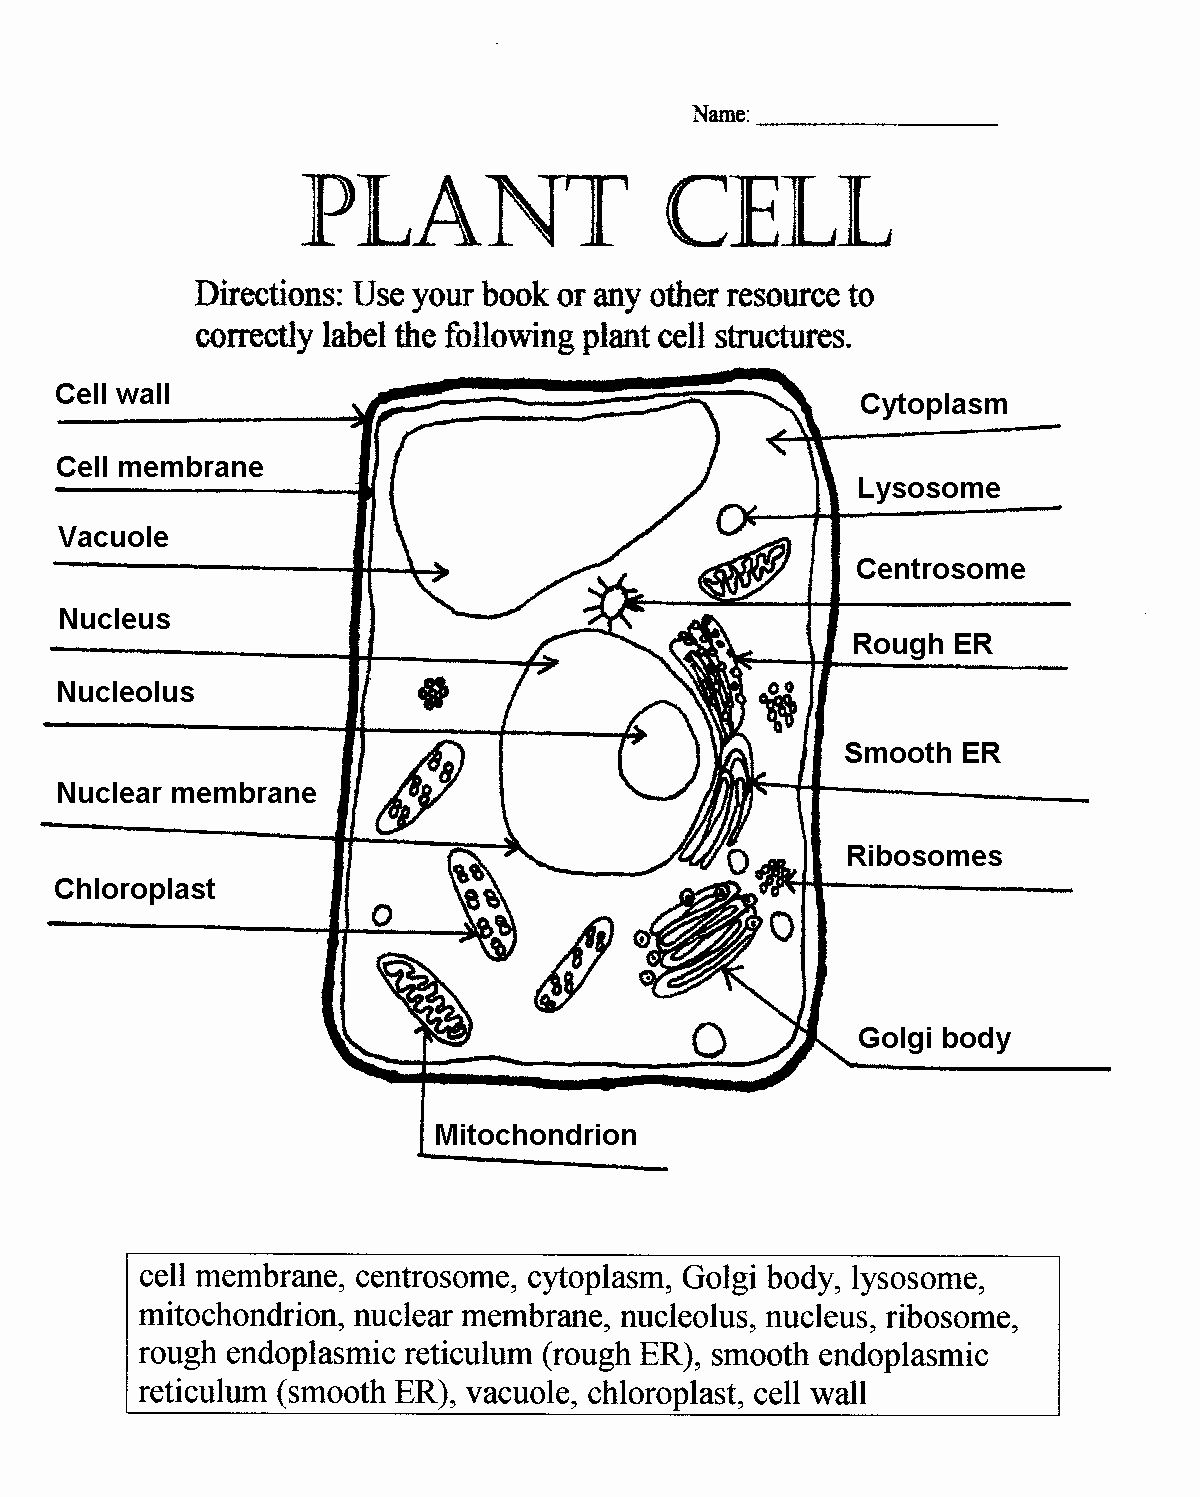 Animal And Plant Cells Worksheet Inspirational 1000 Images About Plant Animal Cells On Pinterest Ch Cells Worksheet Plant And Animal Cells Plant Cell Diagram